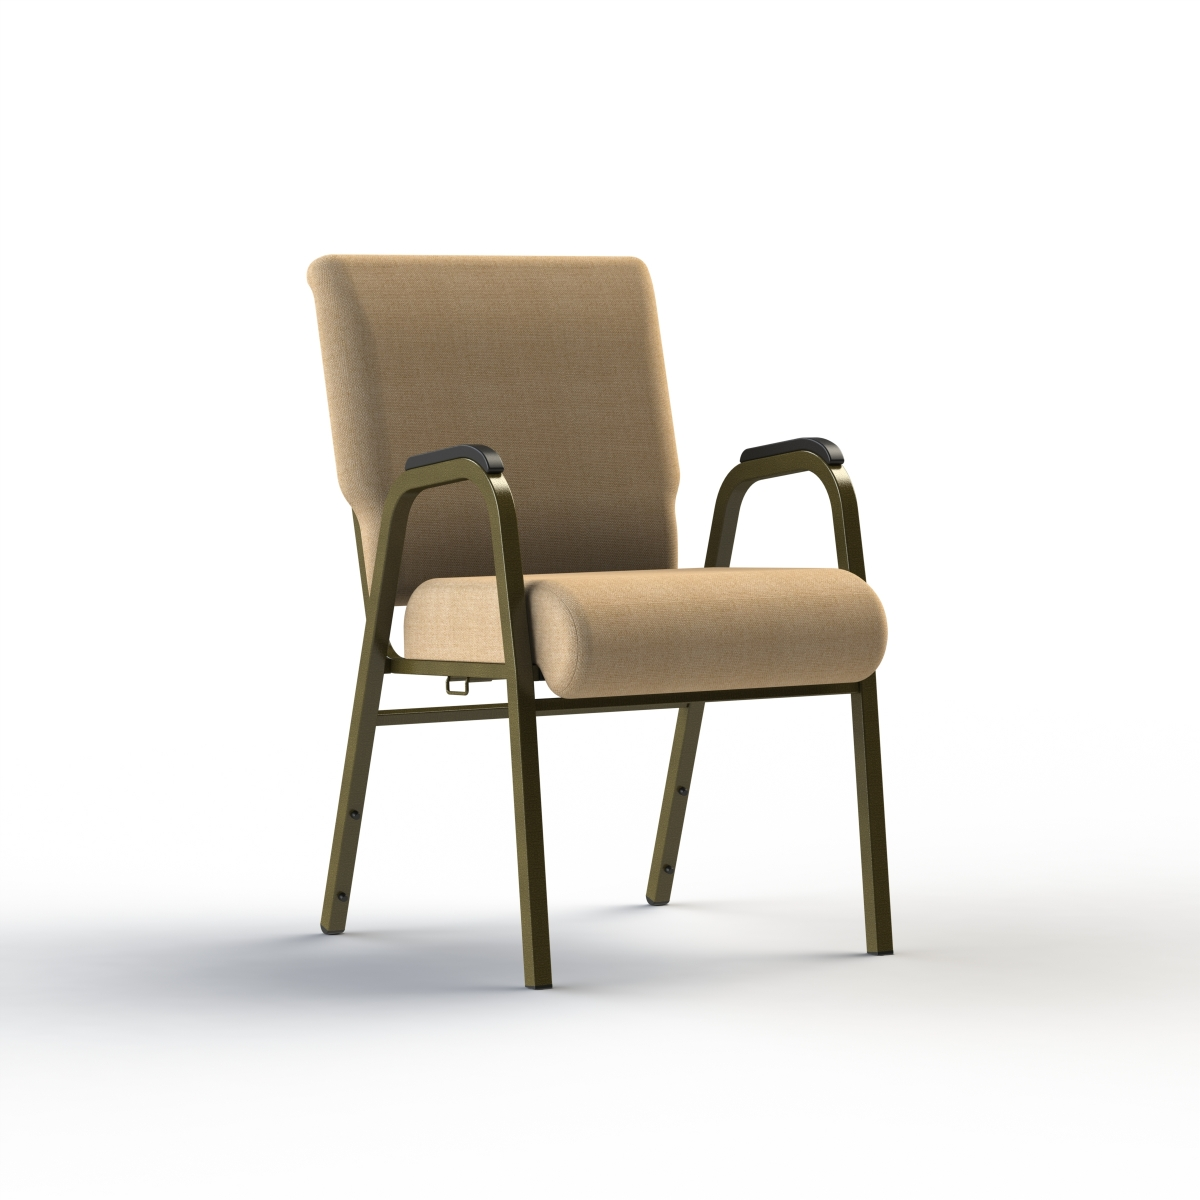 cathedral chairs hanging zone chair arm rests woods church interiors